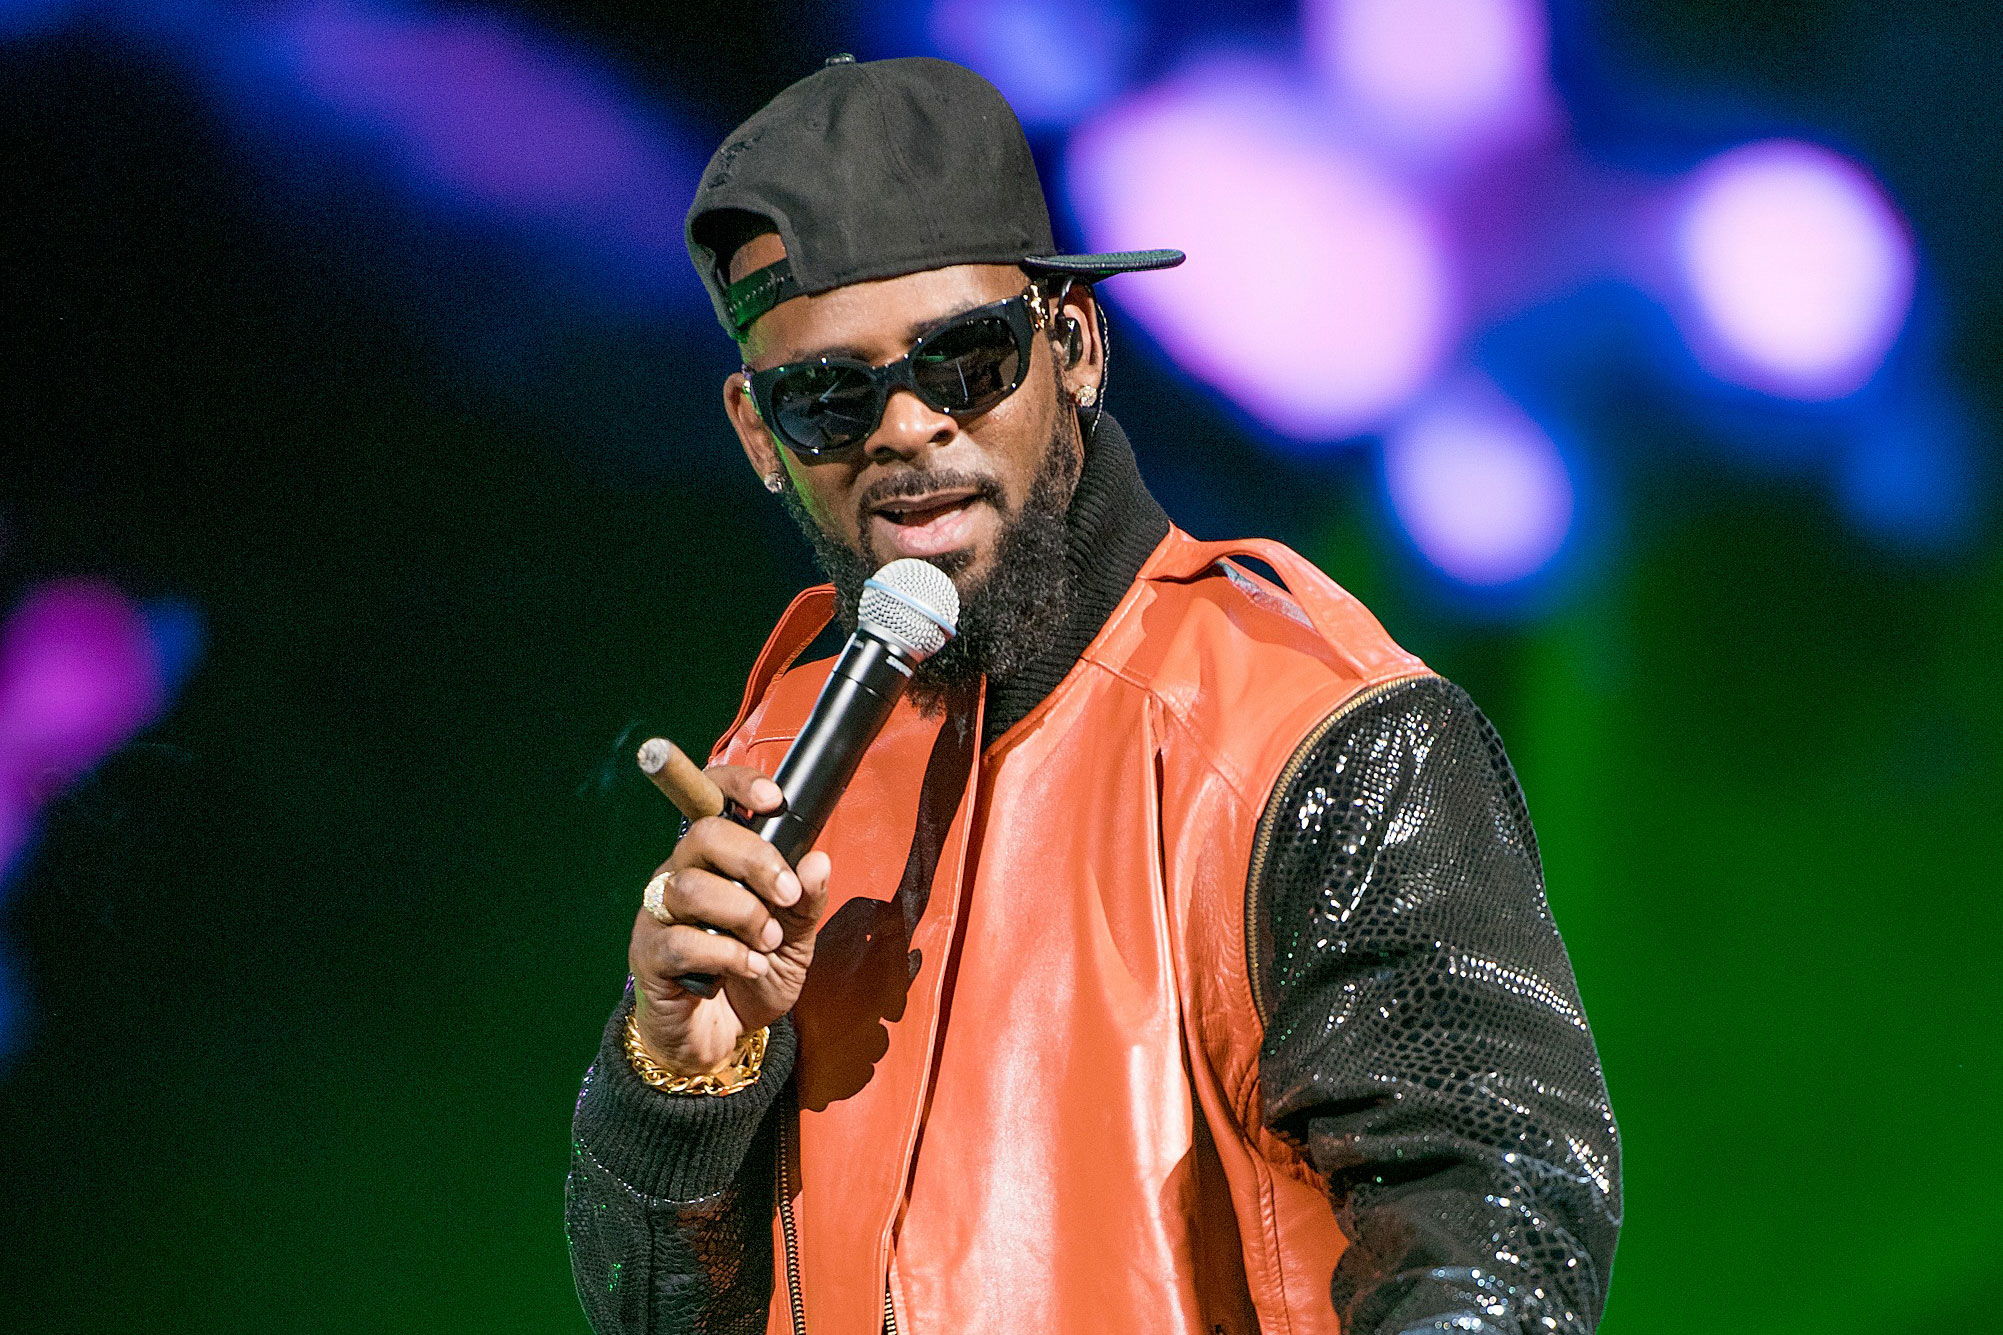 R. Kelly's Singing Competition At Hot Dog Stand - Dish ...